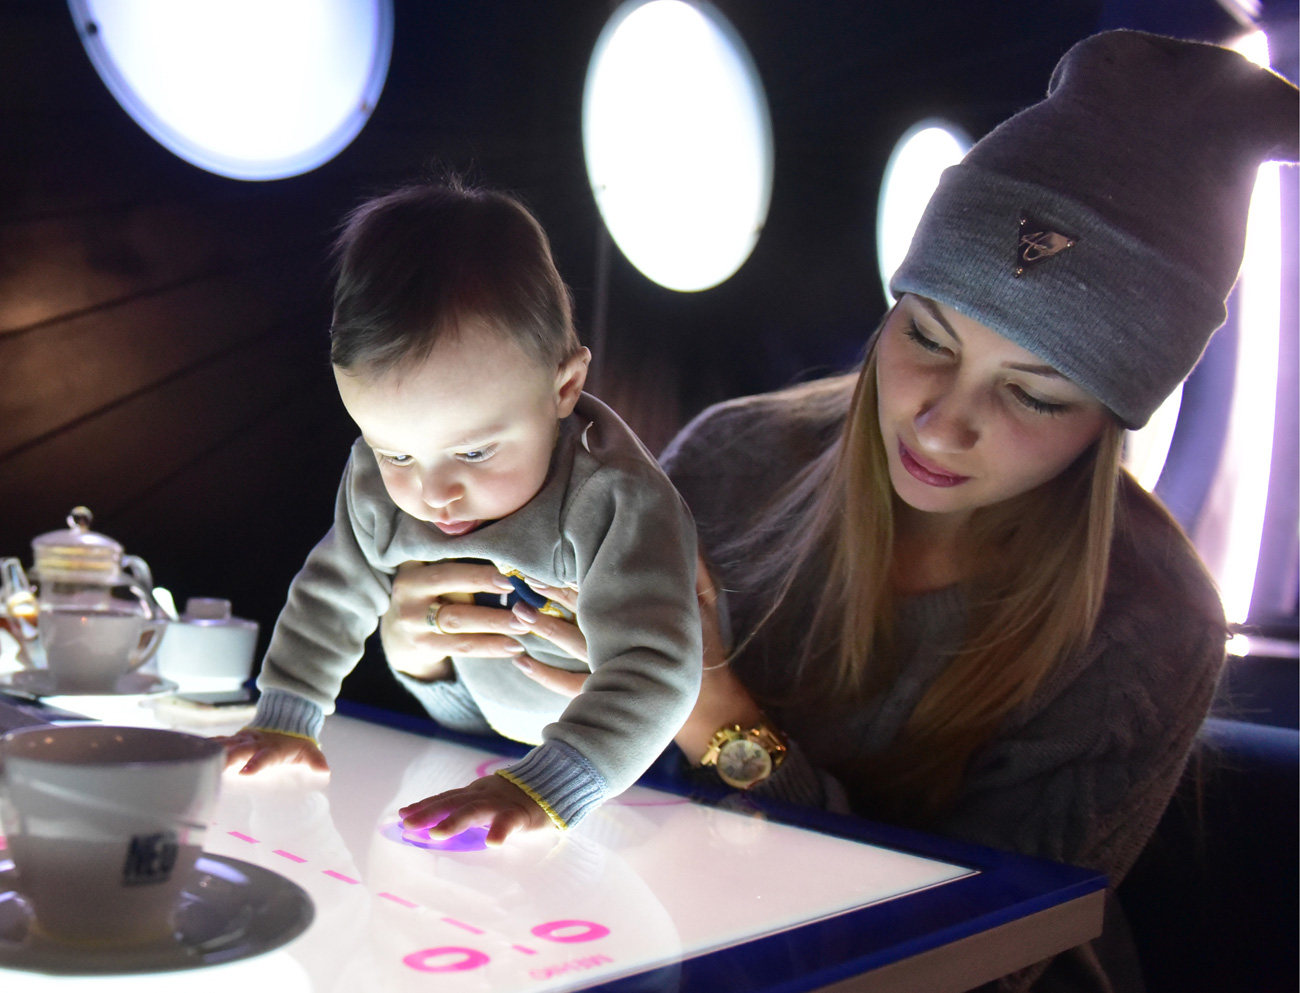 VLADIKAVKAZ, RUSSIA  A woman and a baby at the NEO interactive restaurant. The restaurant is equipped with interactive tables where people can view a list of dish ingredients, place an order or play games while waiting for meal.